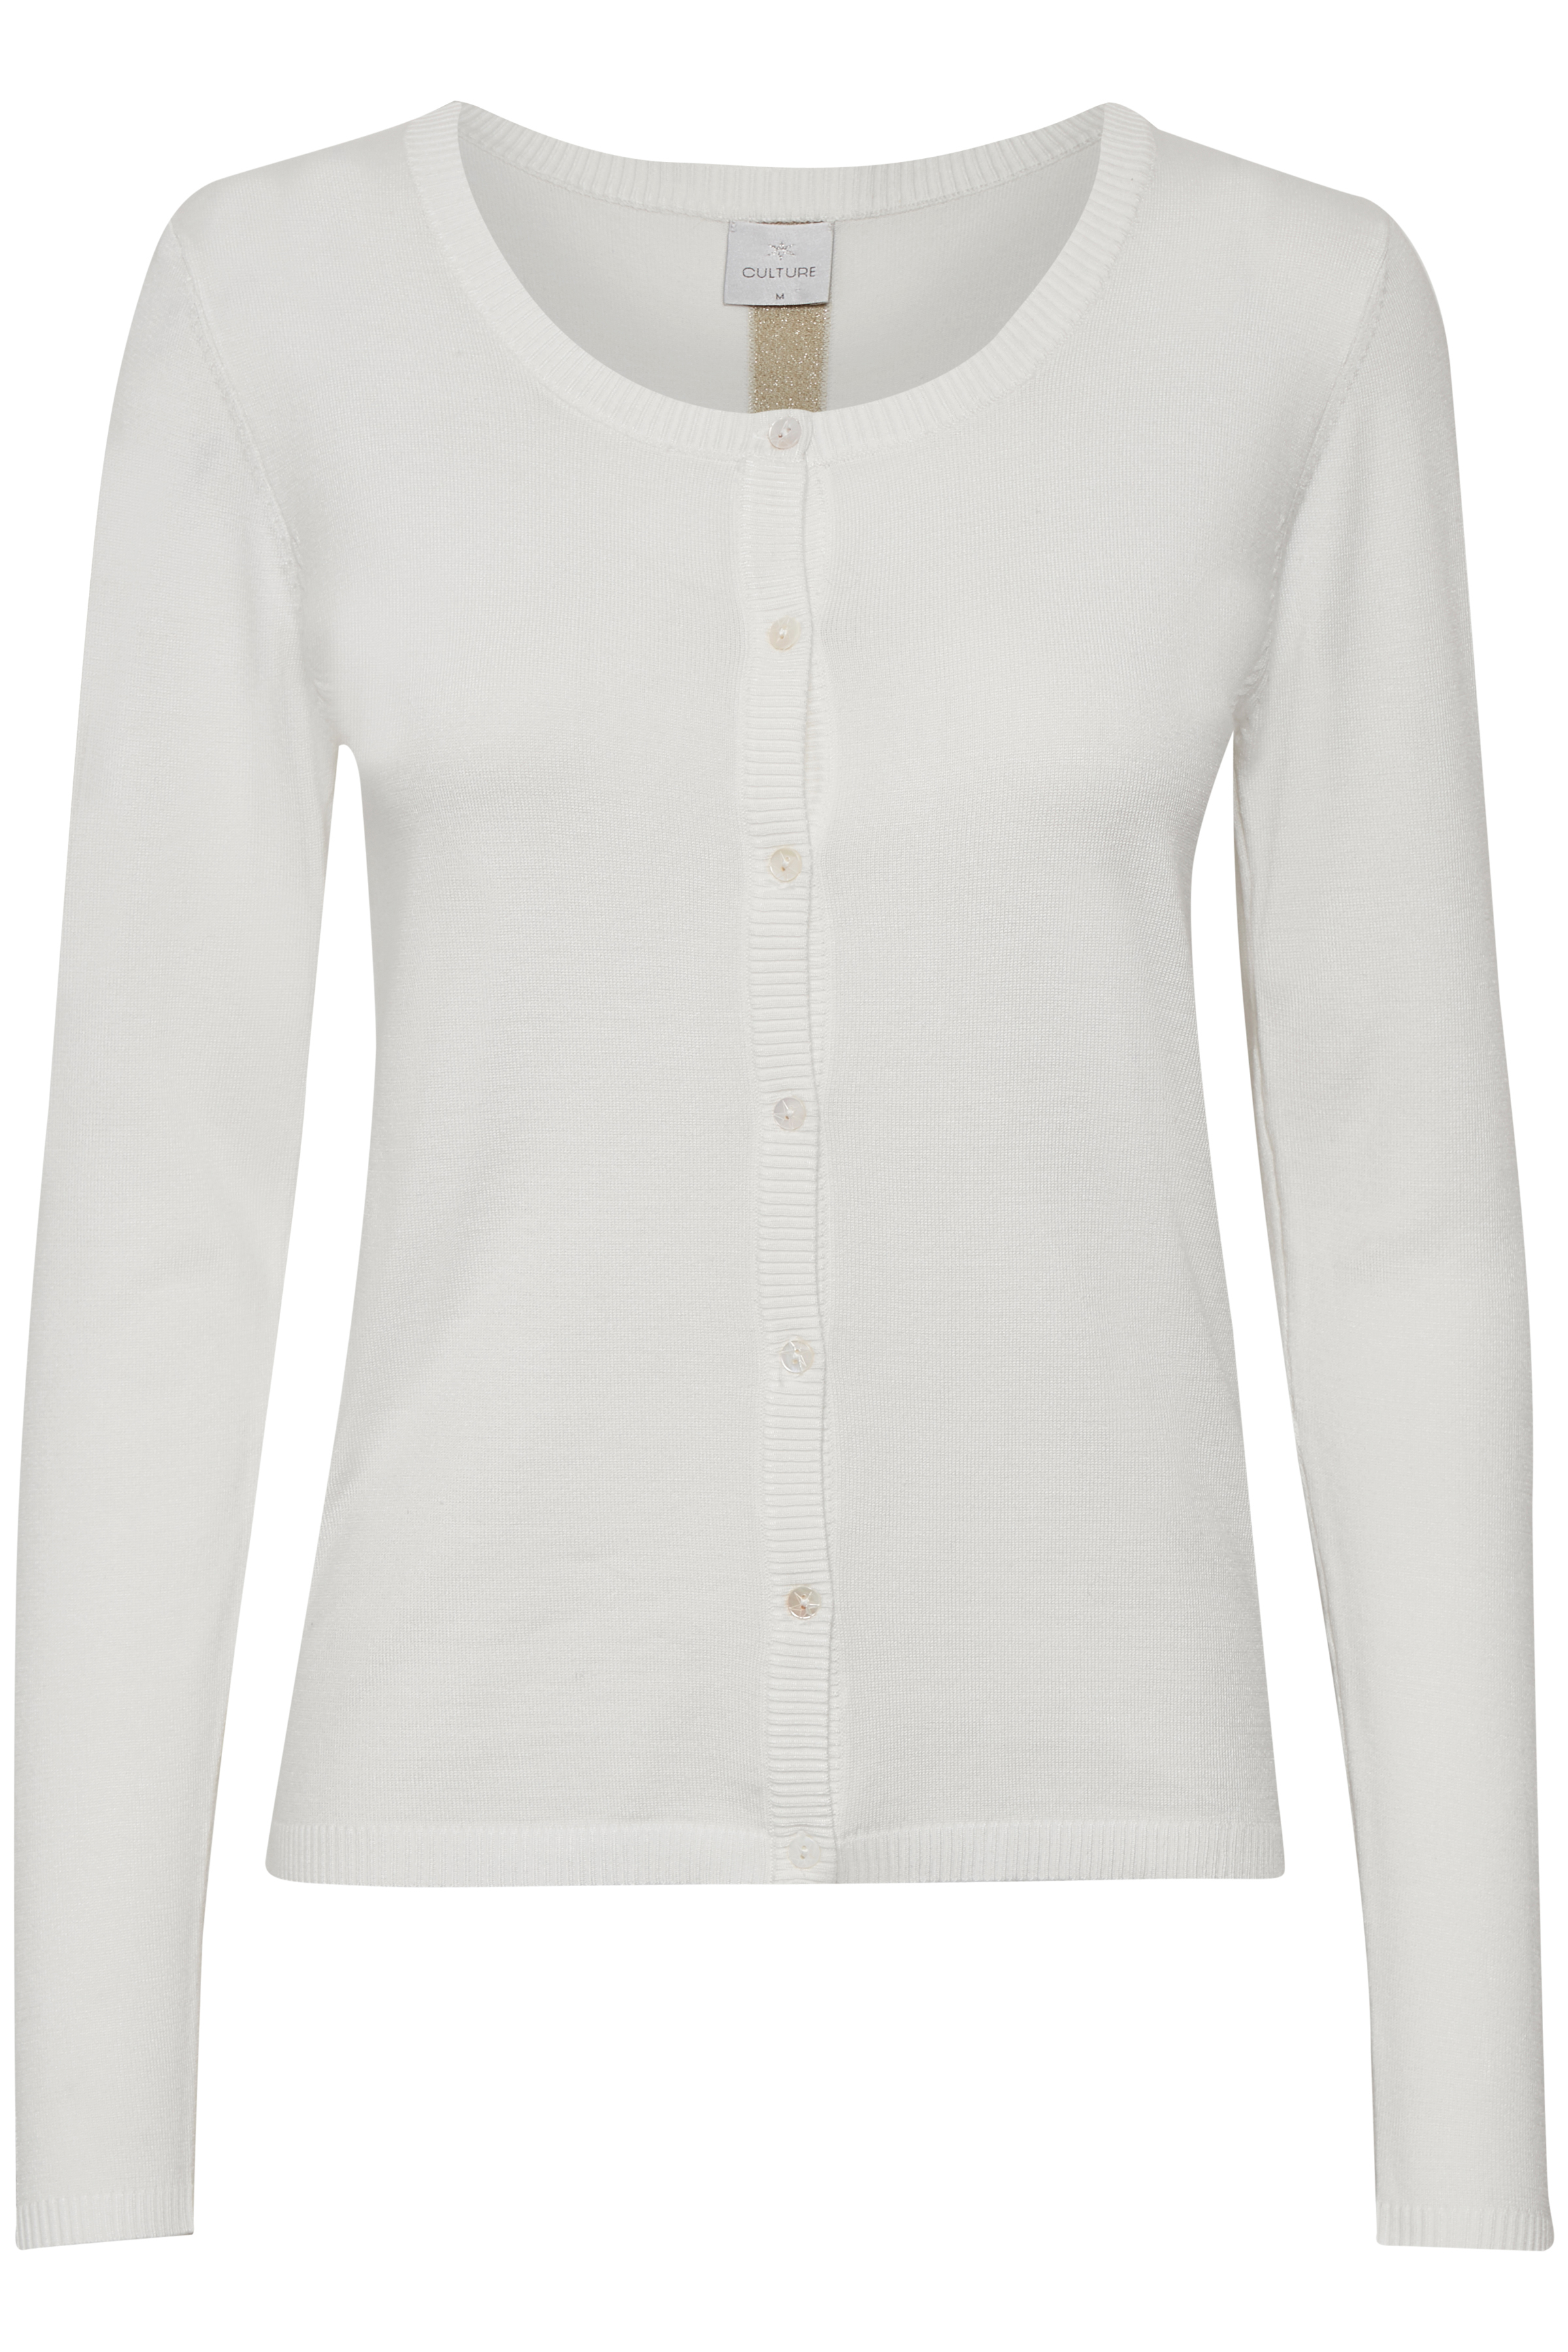 Image of Culture Dame Anne-marie cardigan - Off-white